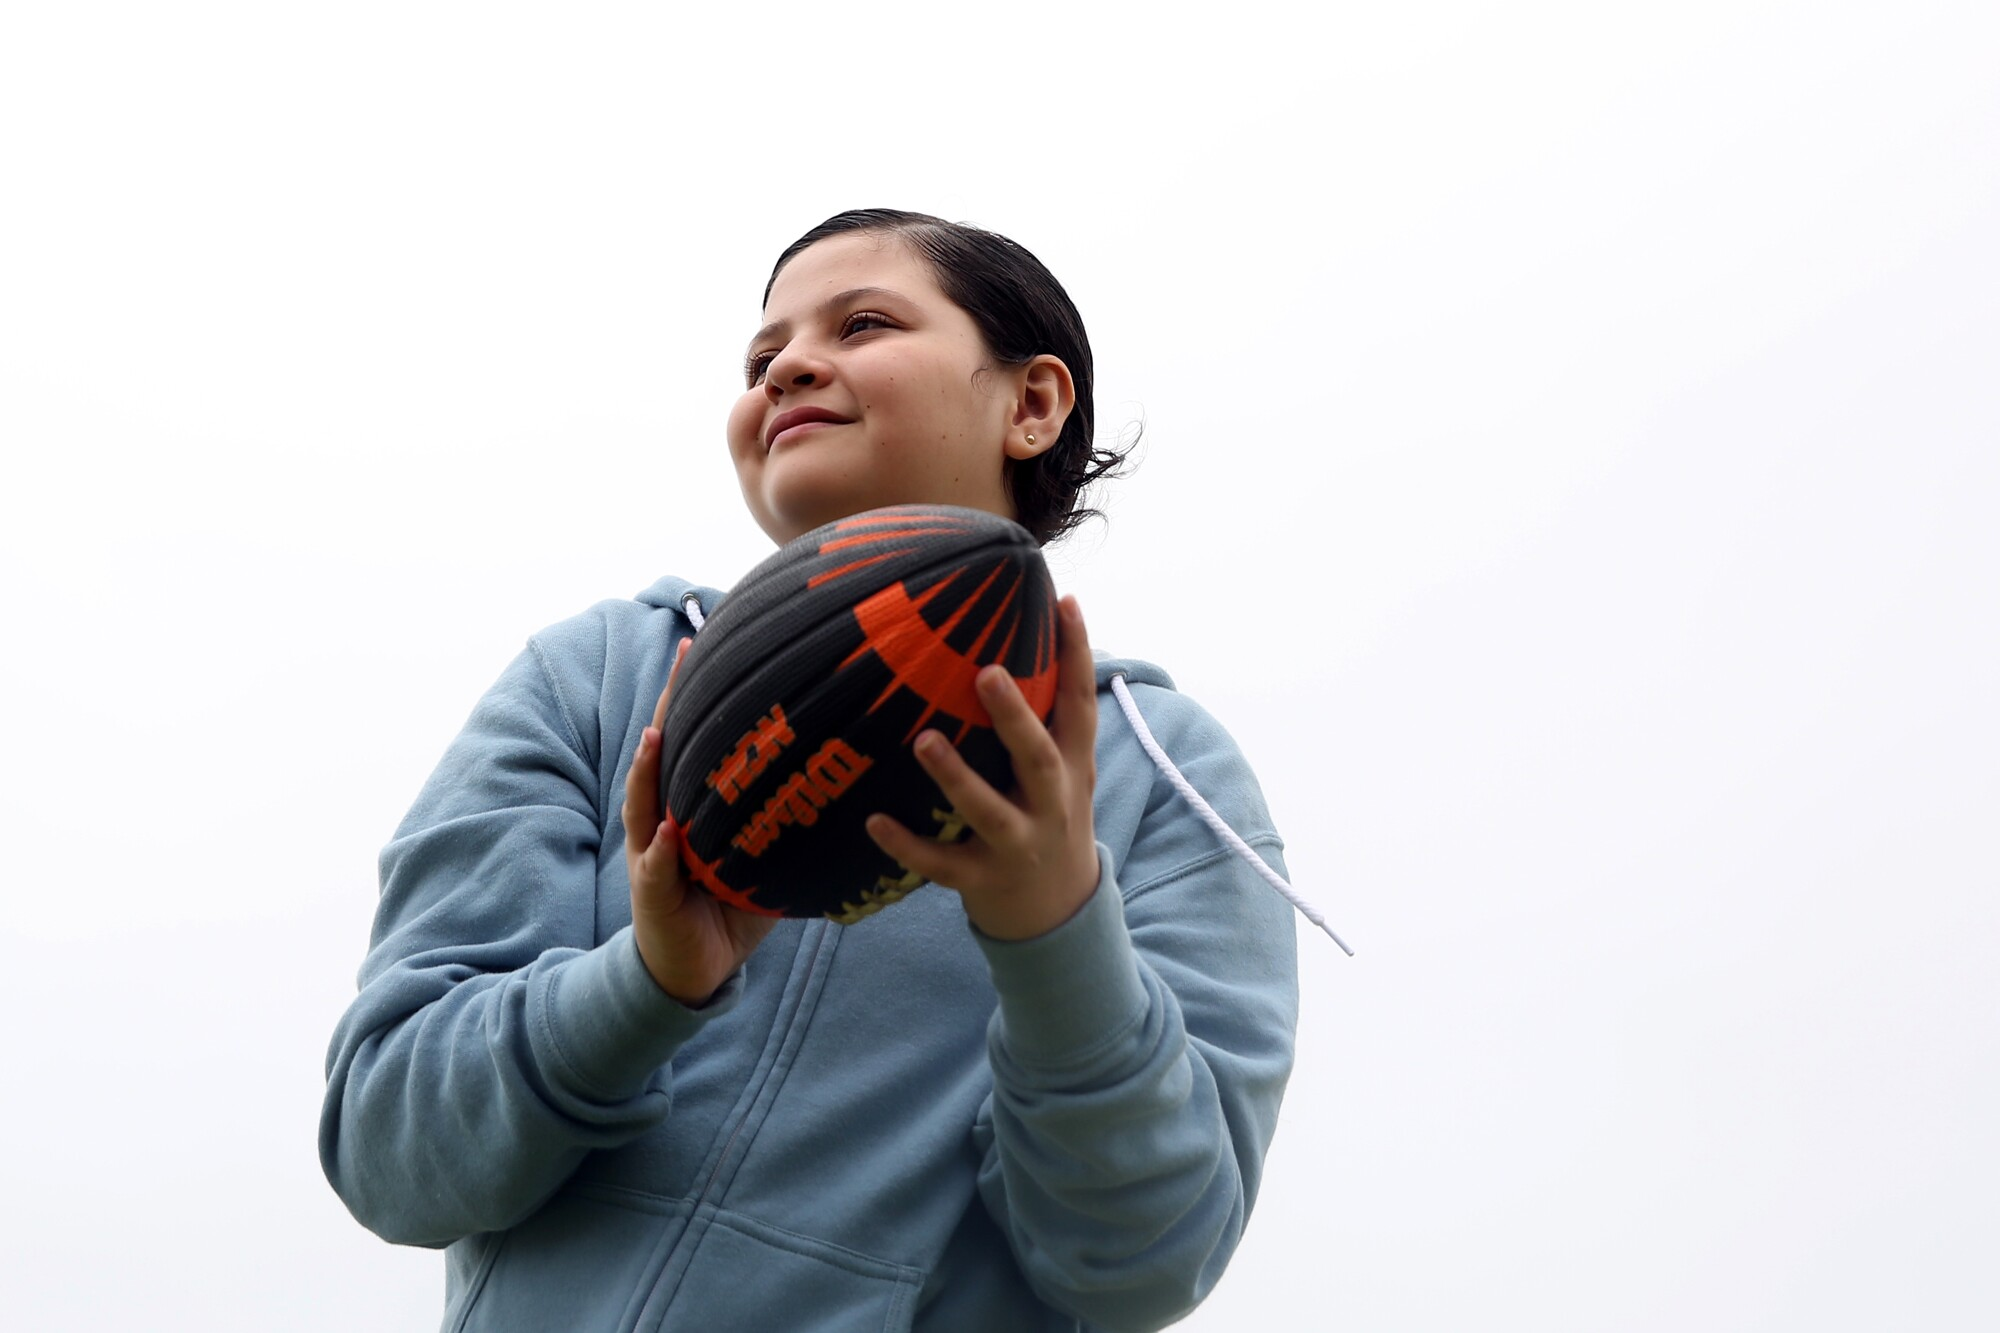 Kayla Diaz, 12, tosses the football with her mom at Point Fermin Park.